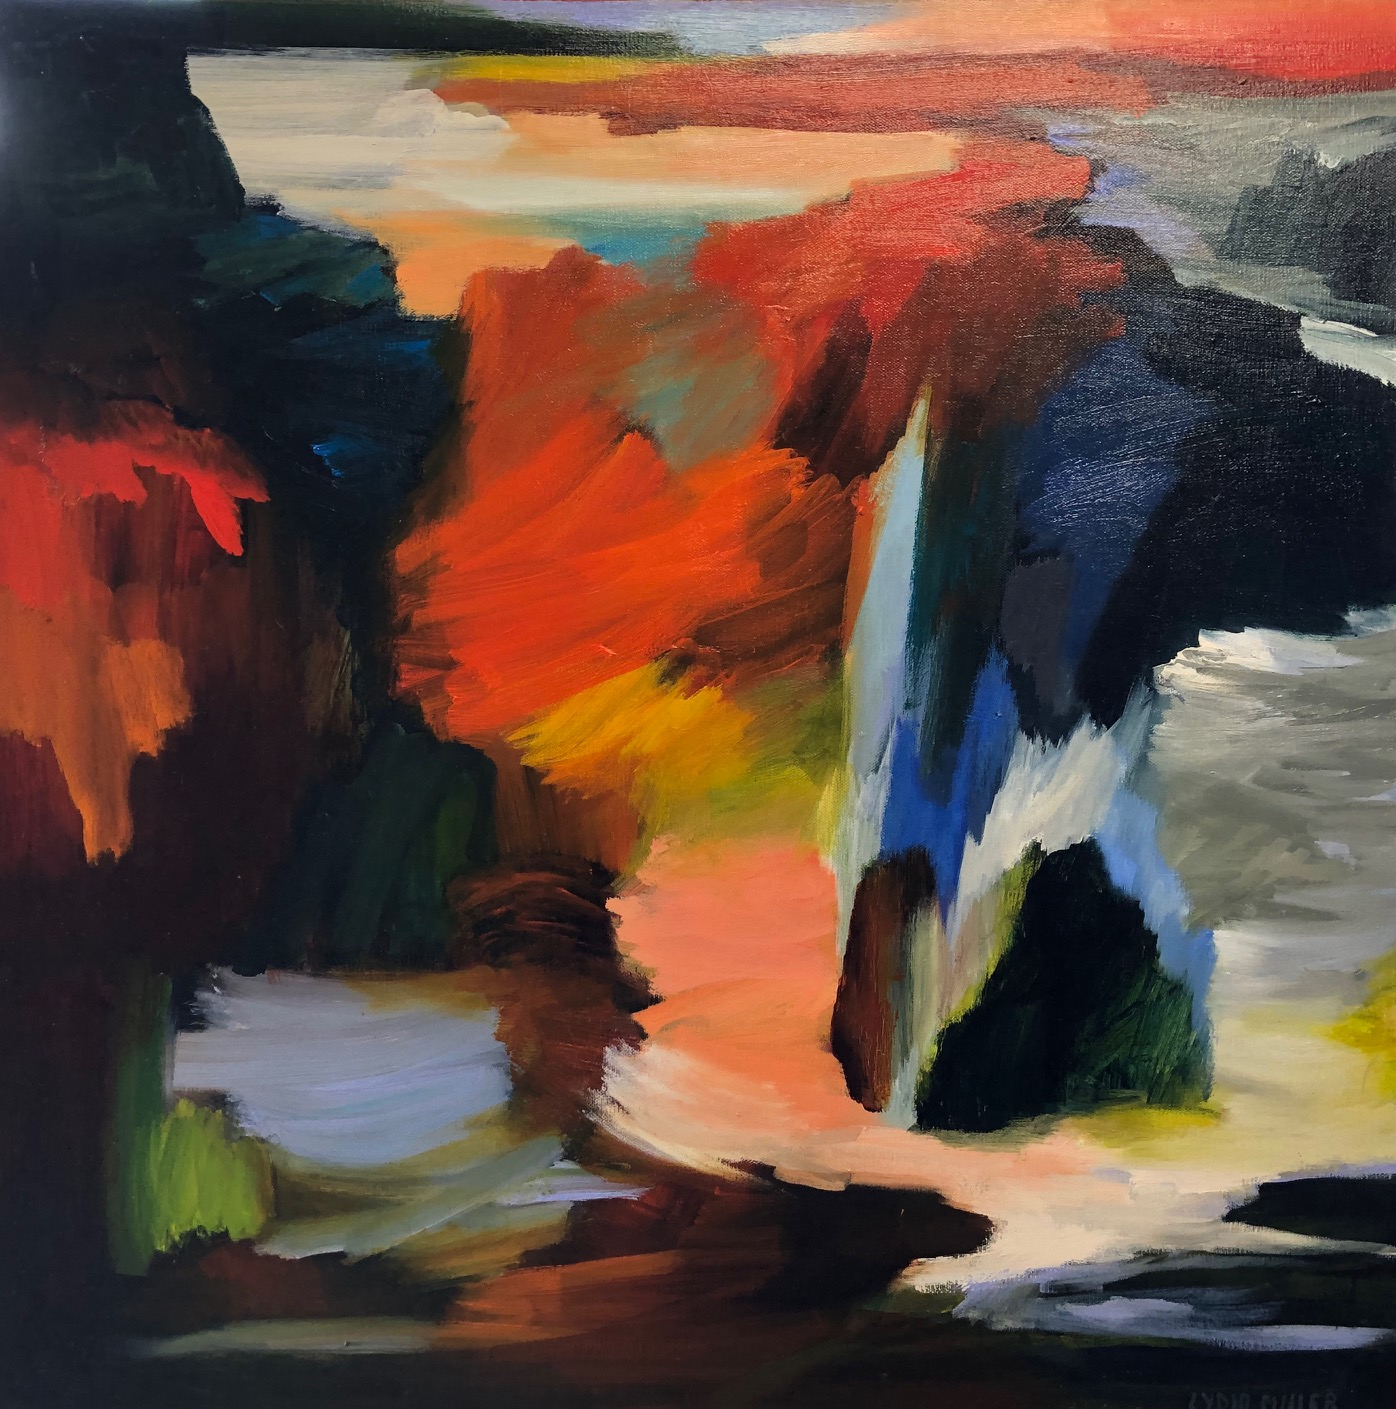 Lydia Miller Abstracted landscape 2016 76 x76cm SOLD